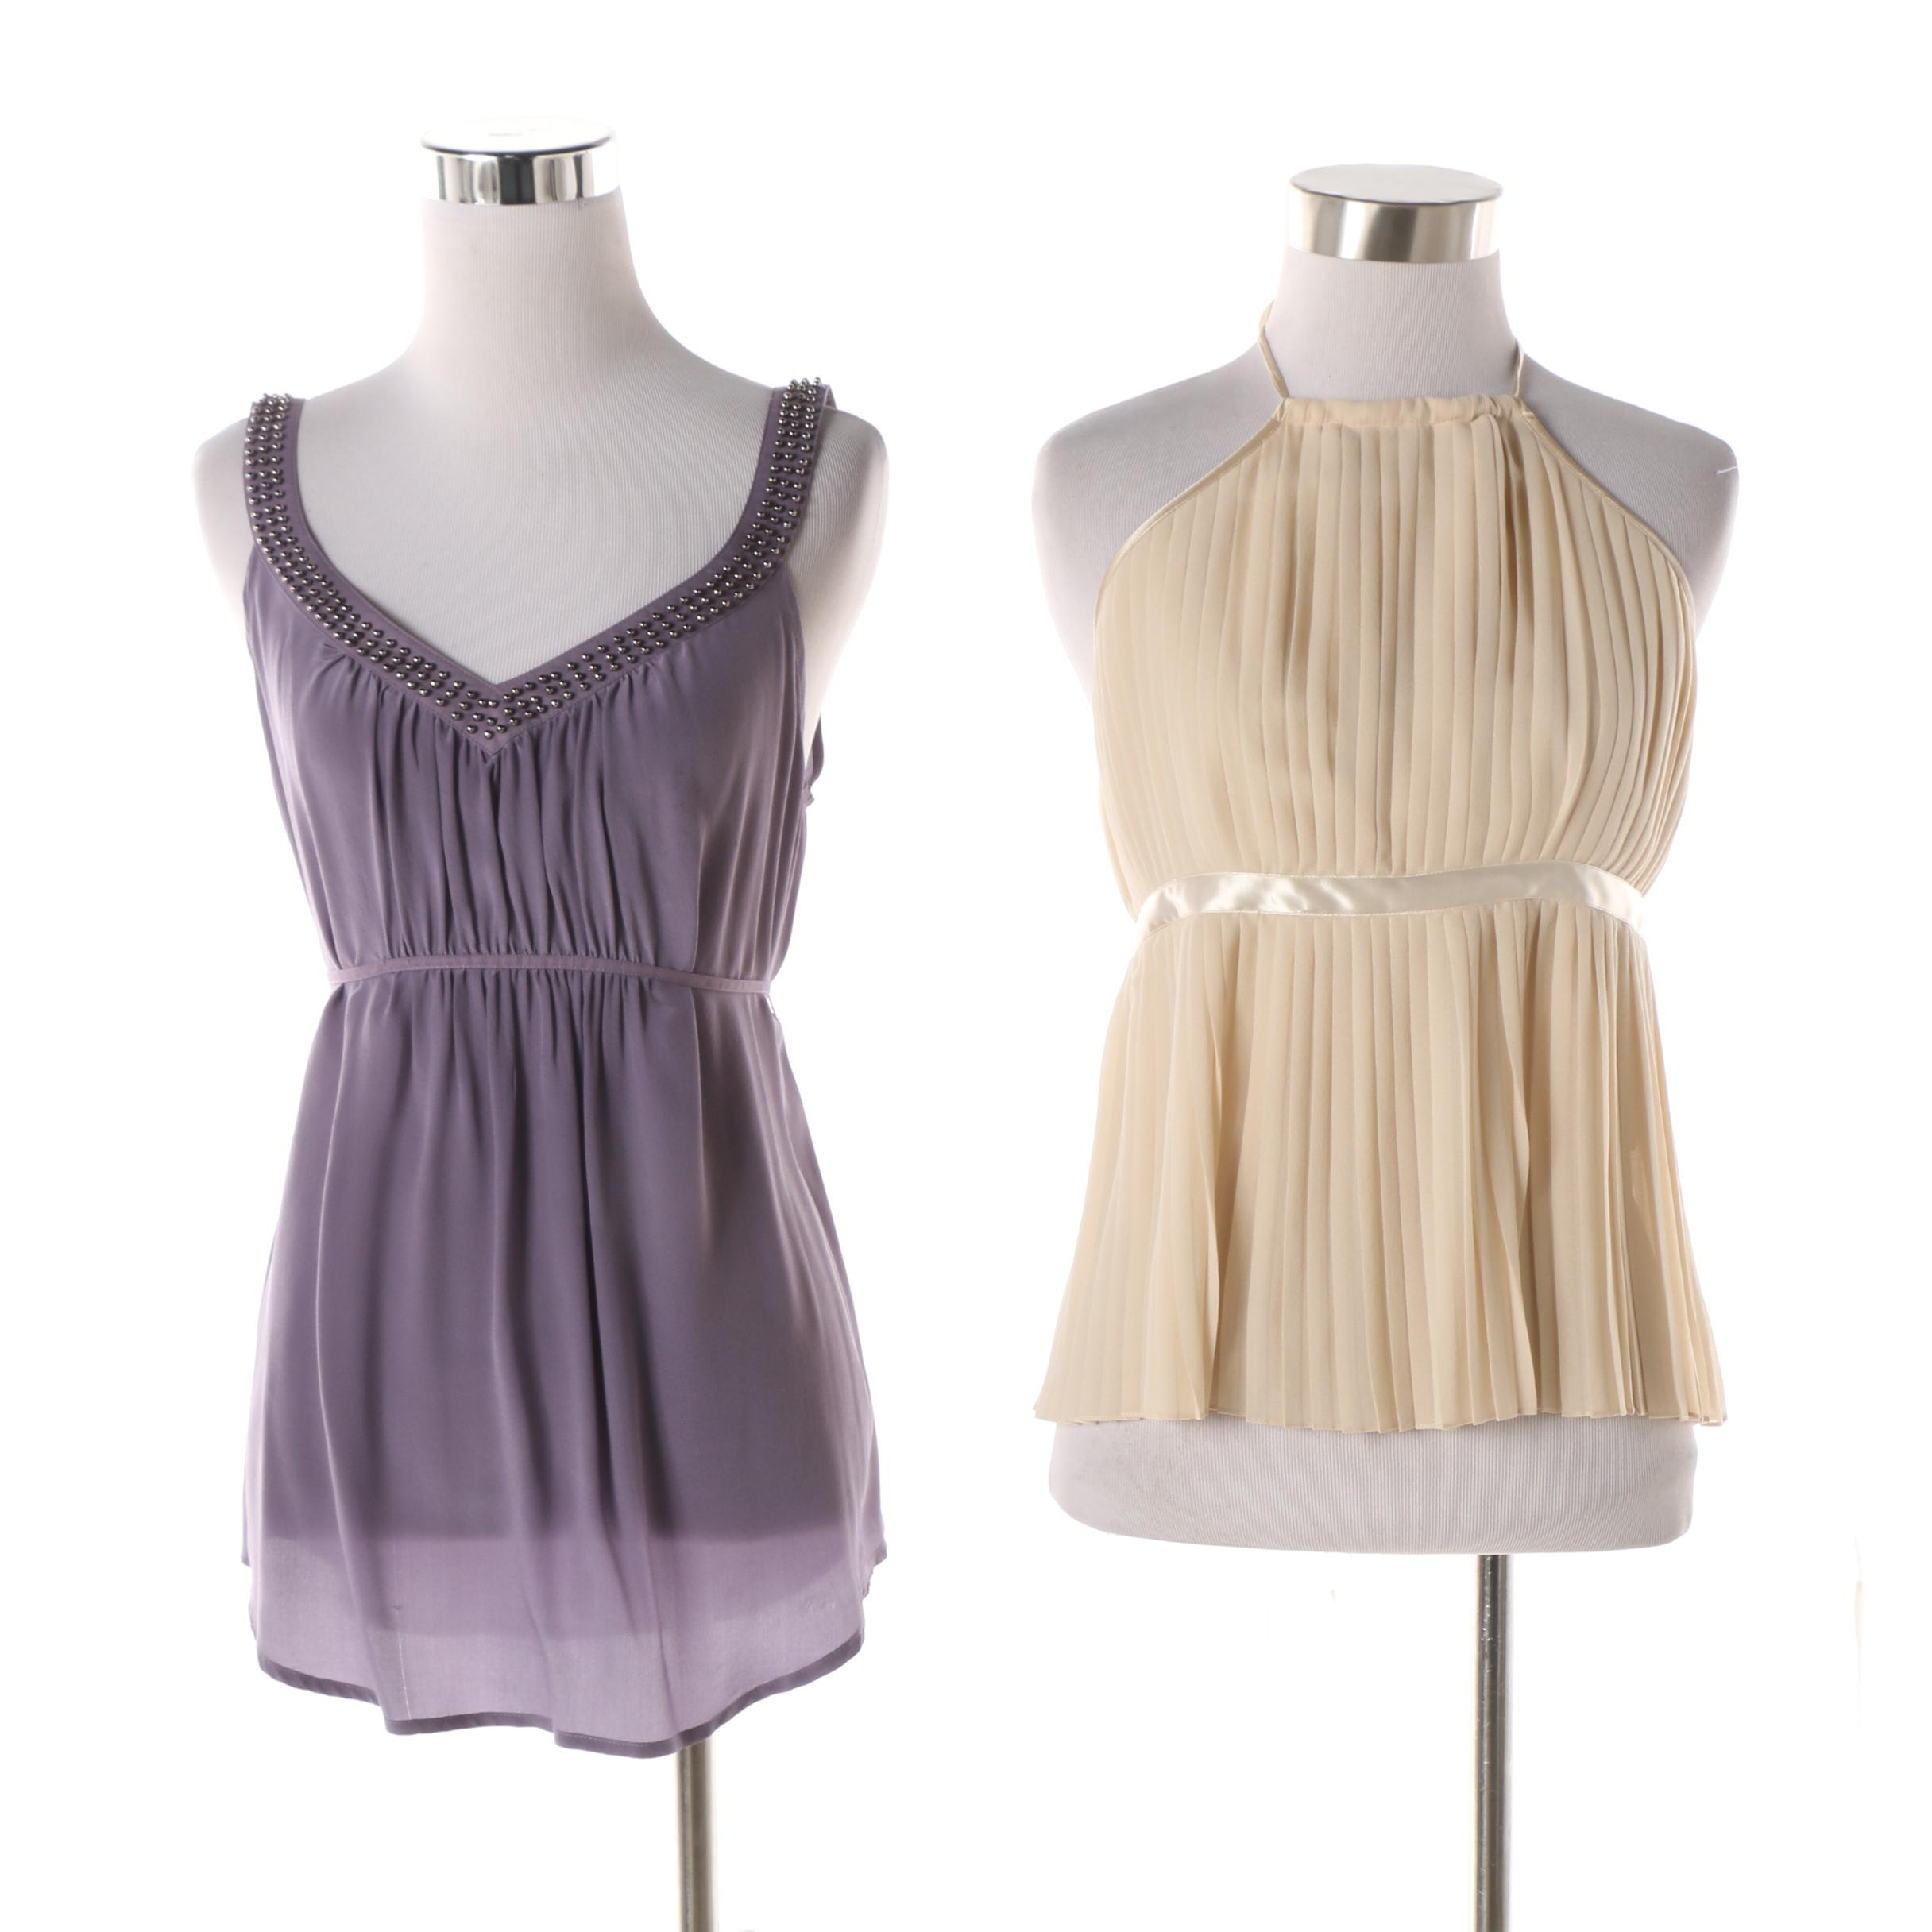 Saks Fifth Avenue Cream Pleated Halter Top and Ecoté Bead Accented Purple Tunic